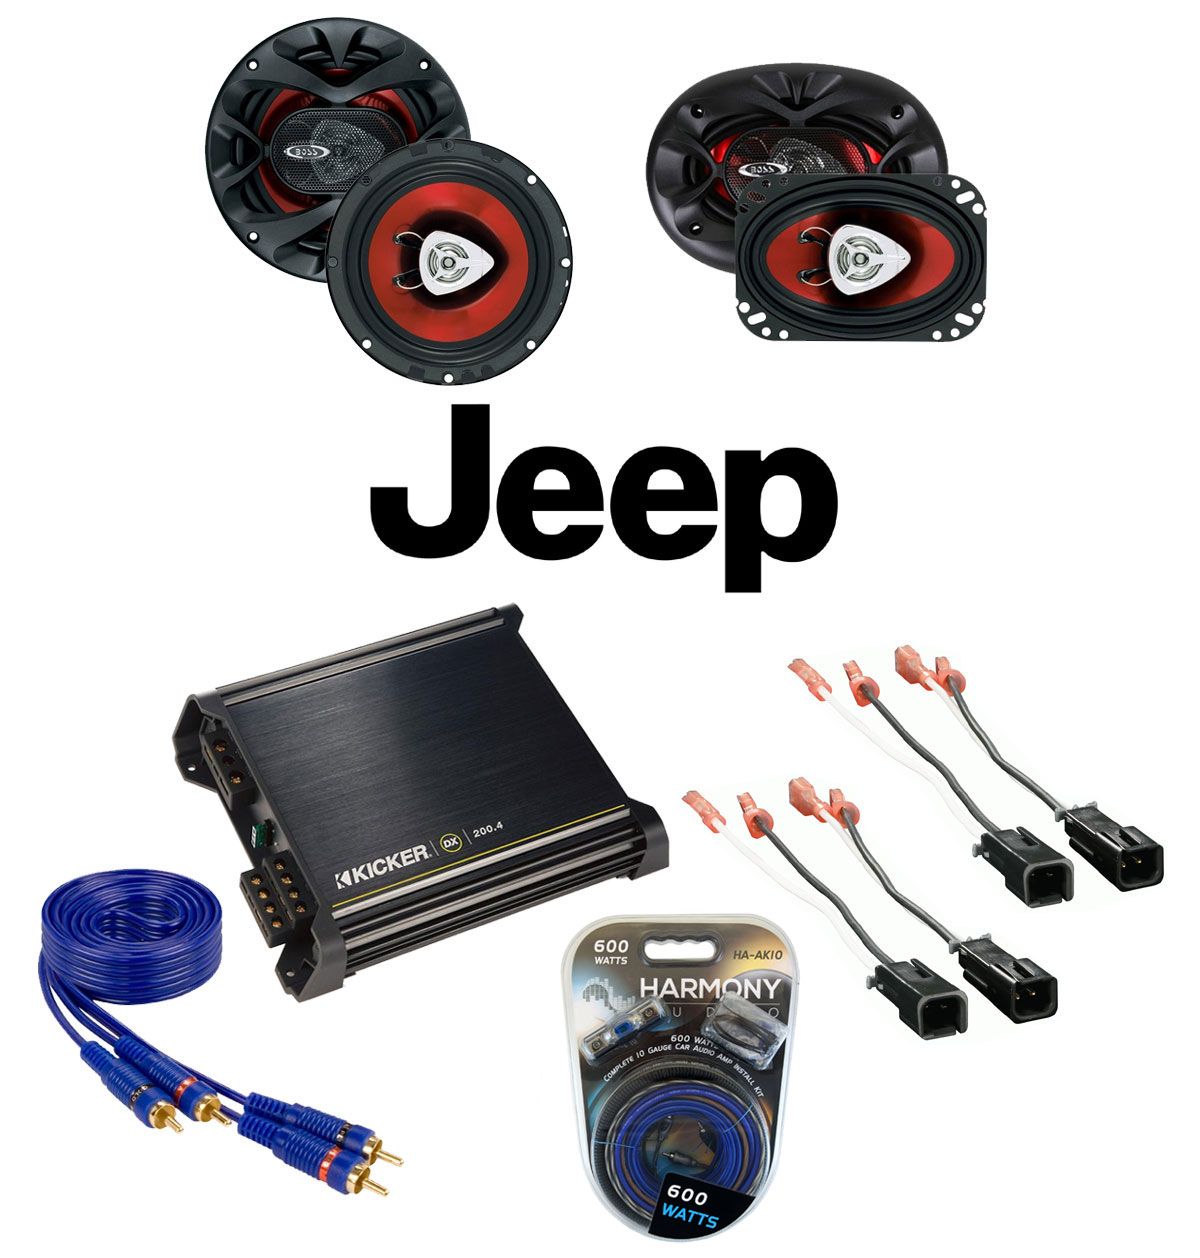 jeep wrangler 1997 2006 boss ch4630 ch6500 coaxial factory upgrade replacement. Black Bedroom Furniture Sets. Home Design Ideas